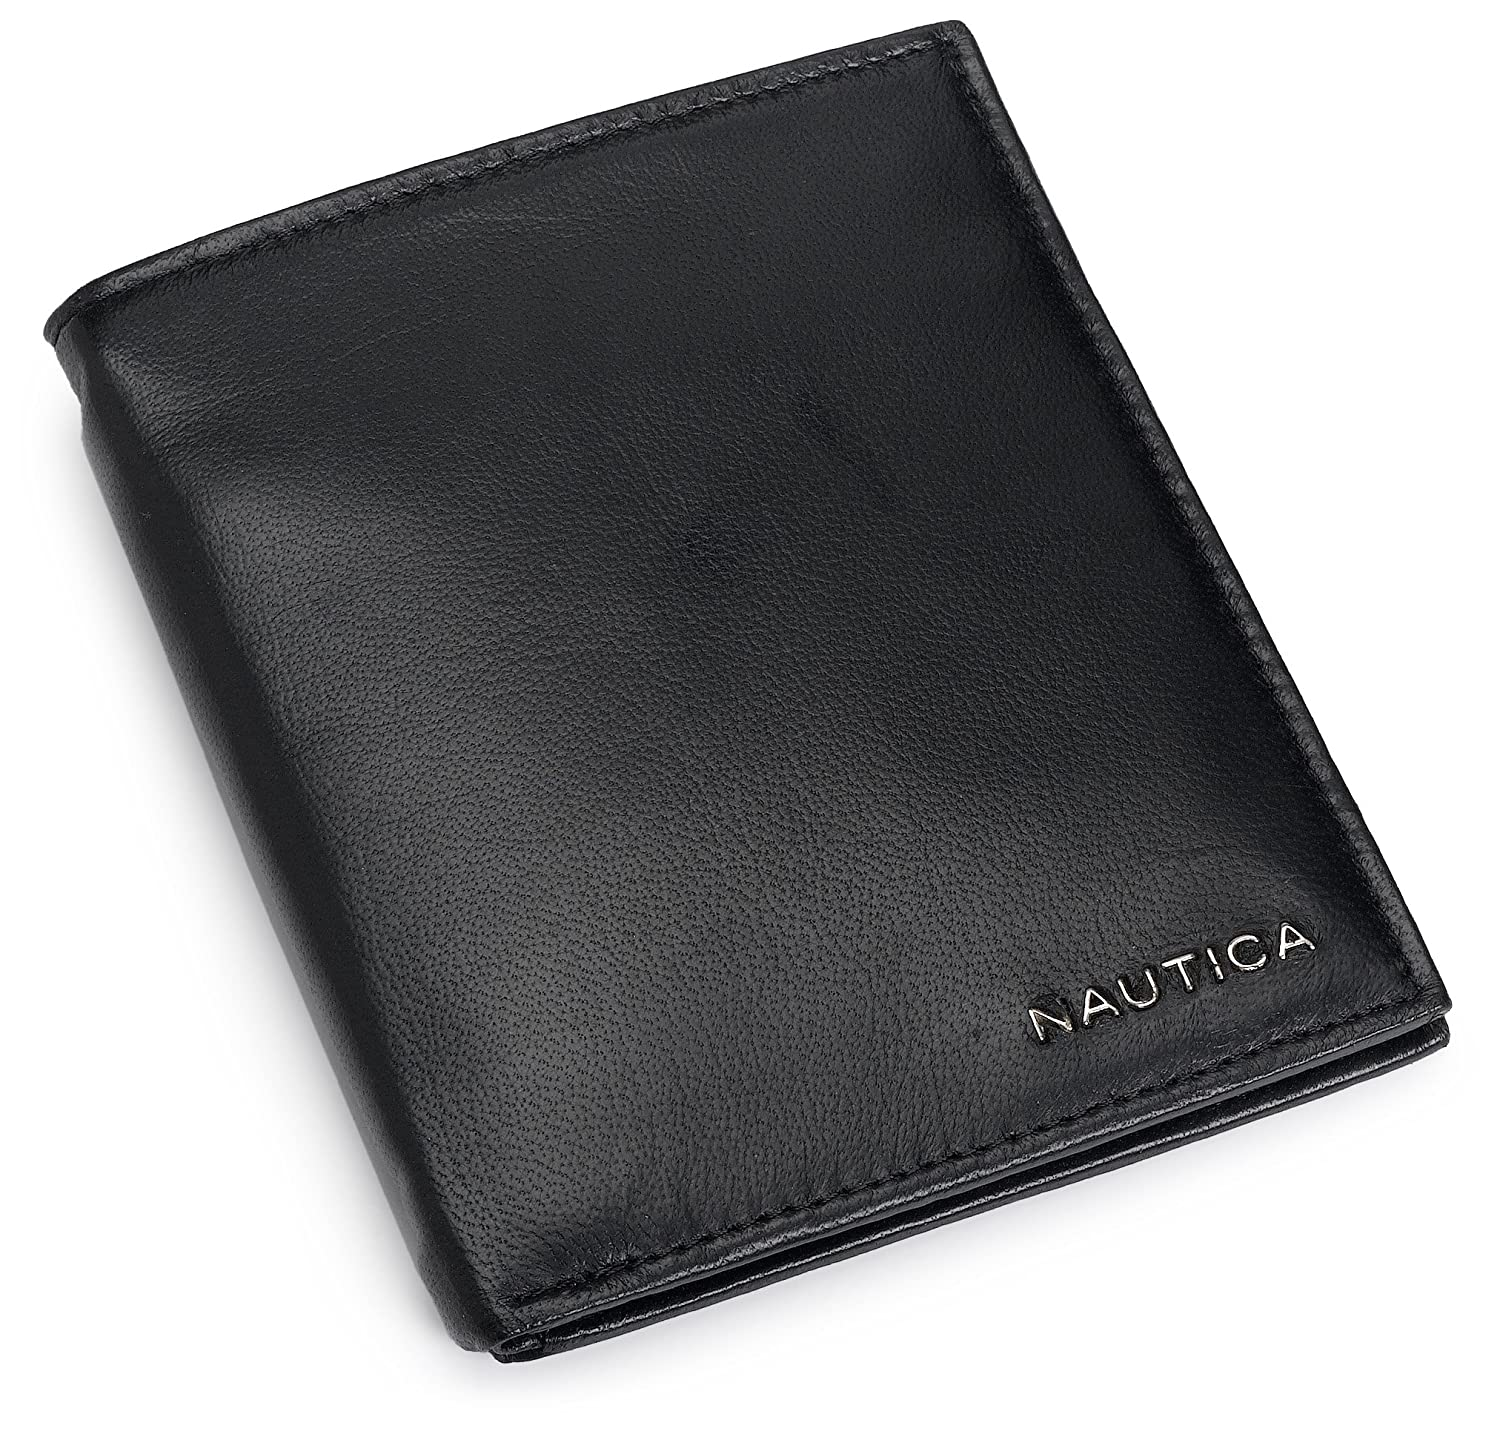 a7b303f6d819 Nautica Men's Credit Card Organizer Wallet